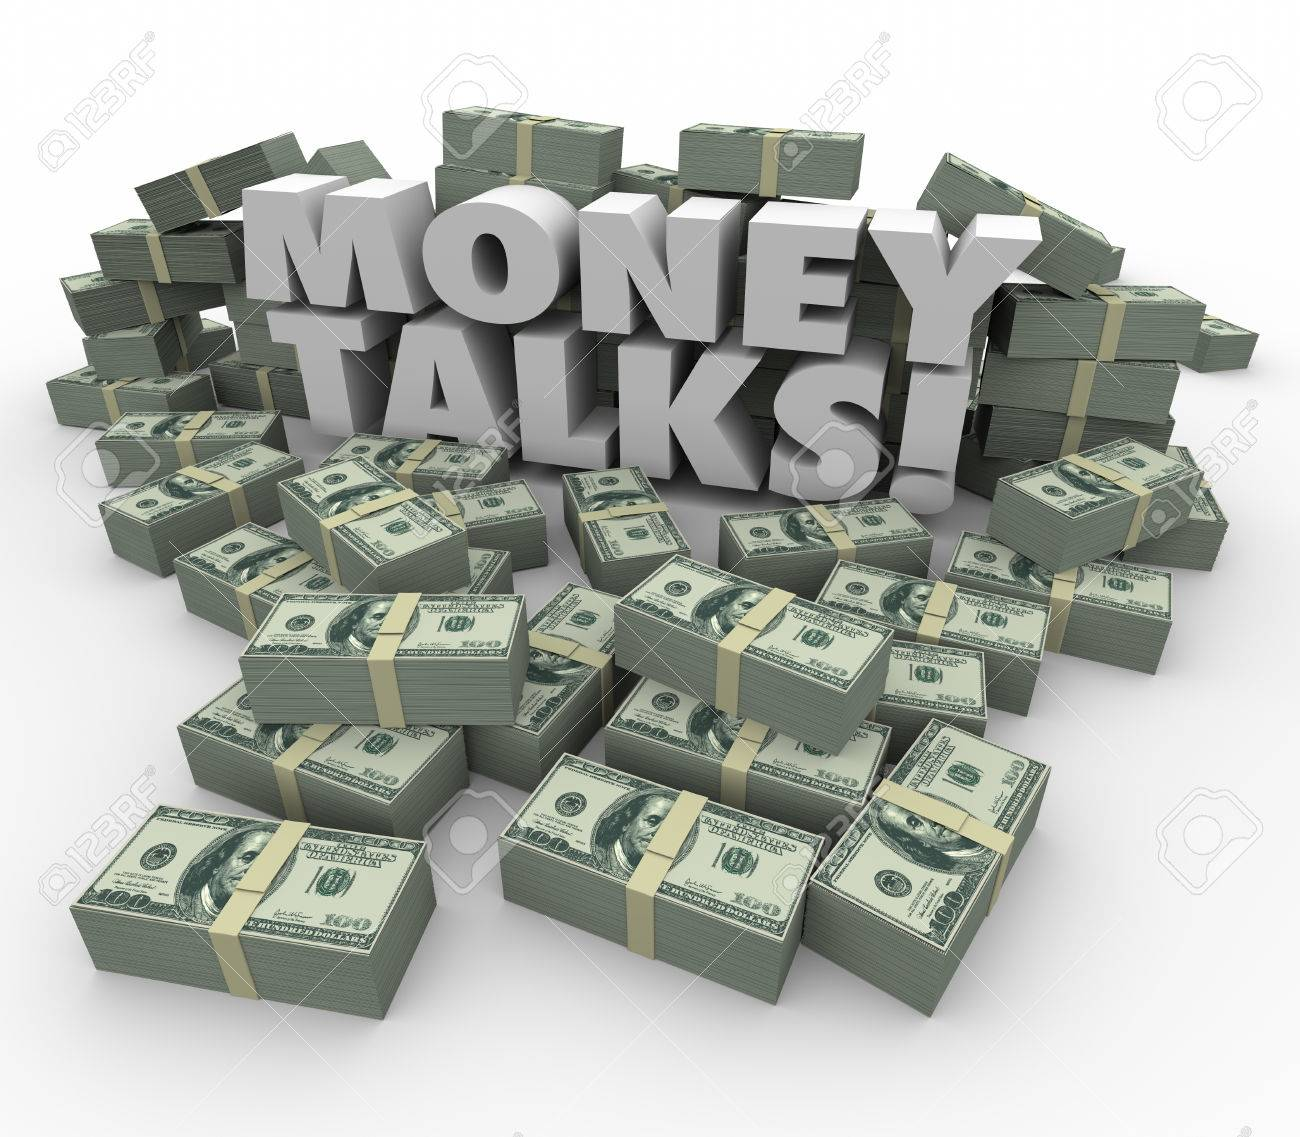 https://cdn.discordapp.com/attachments/263349244516106241/650828887940530176/40336564-money-talks-words-in-white-3d-letters-surrounded-by-staks-or-piles-of-dollars-illustrating-.png